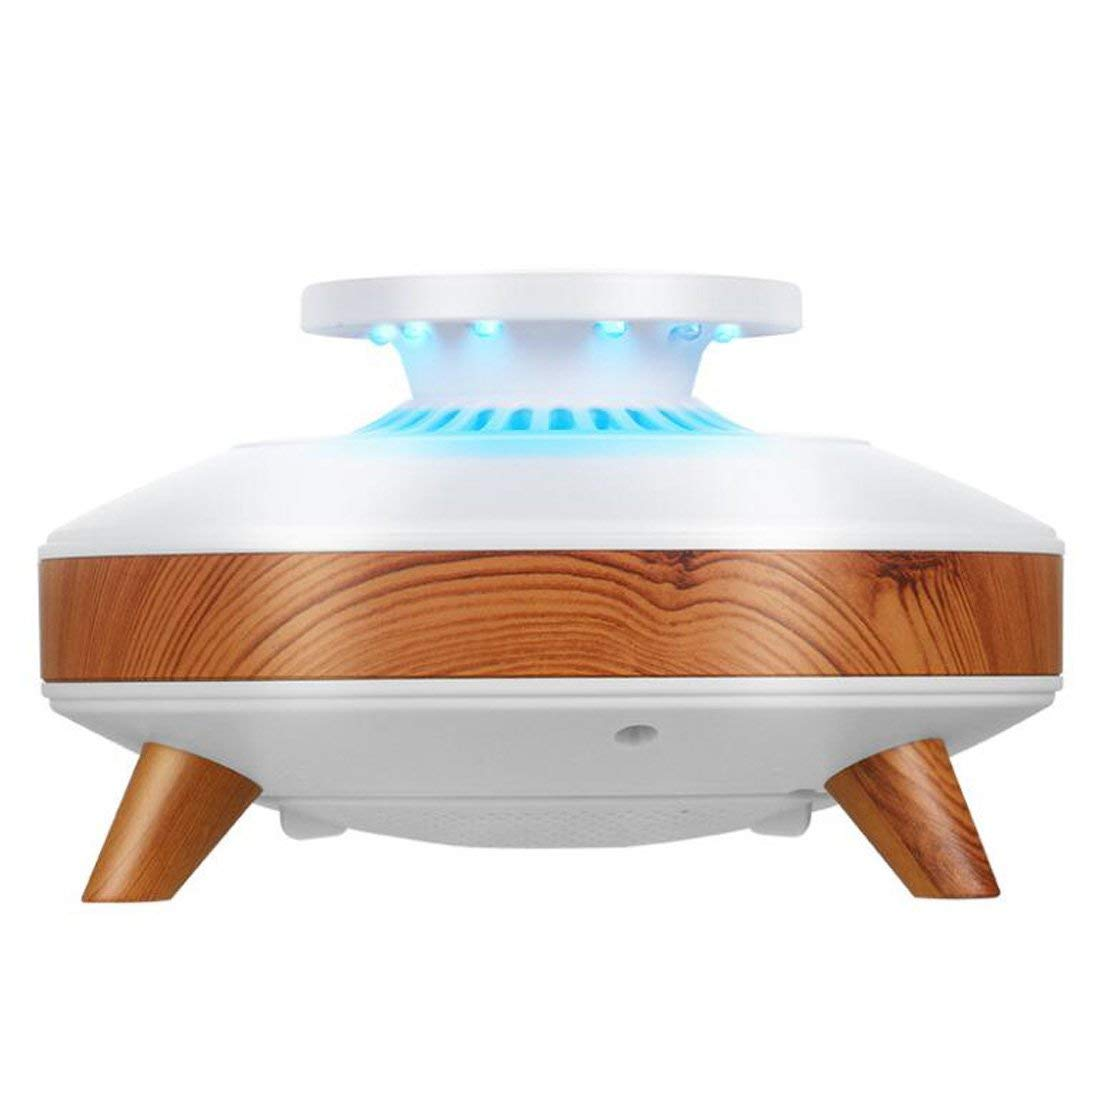 USB Mosquito Killer New Home Indoor Intelligent Photoelectric Inhalation Mosquito Repellent Photocatalyst LED Flytrap Mosquito Killer